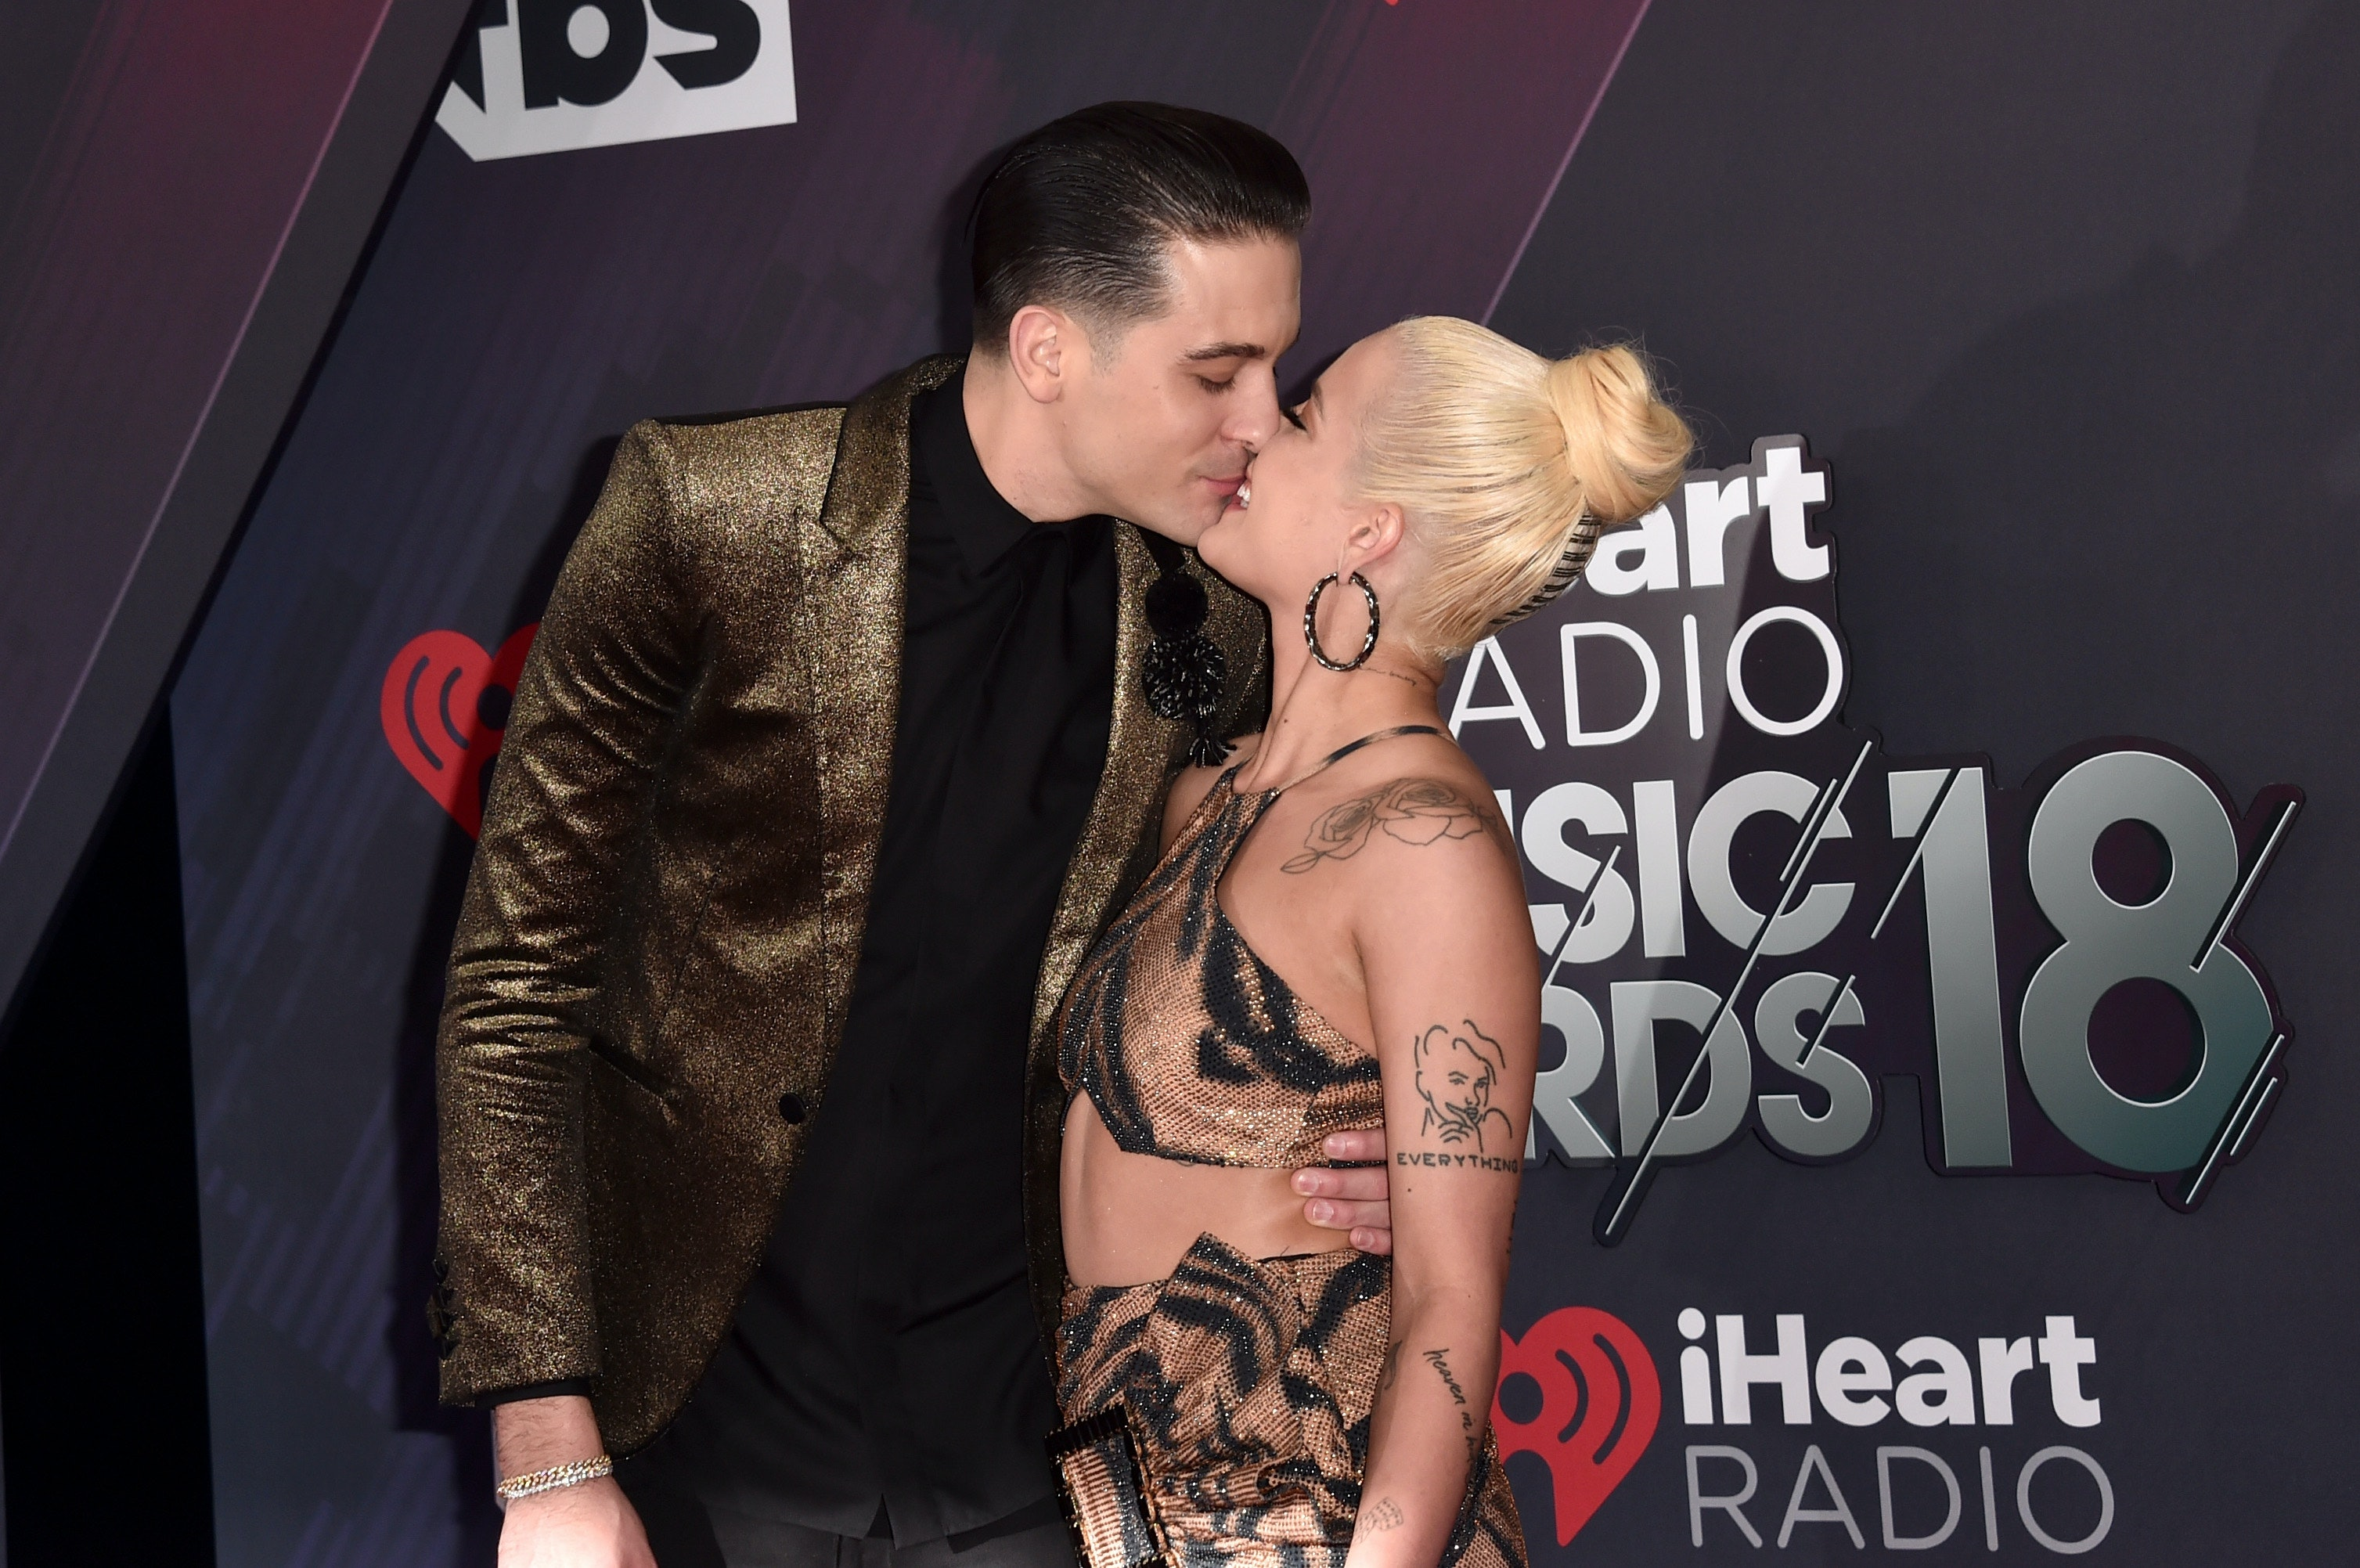 Halsey's Comments About Her Relationship With G-Eazy Are